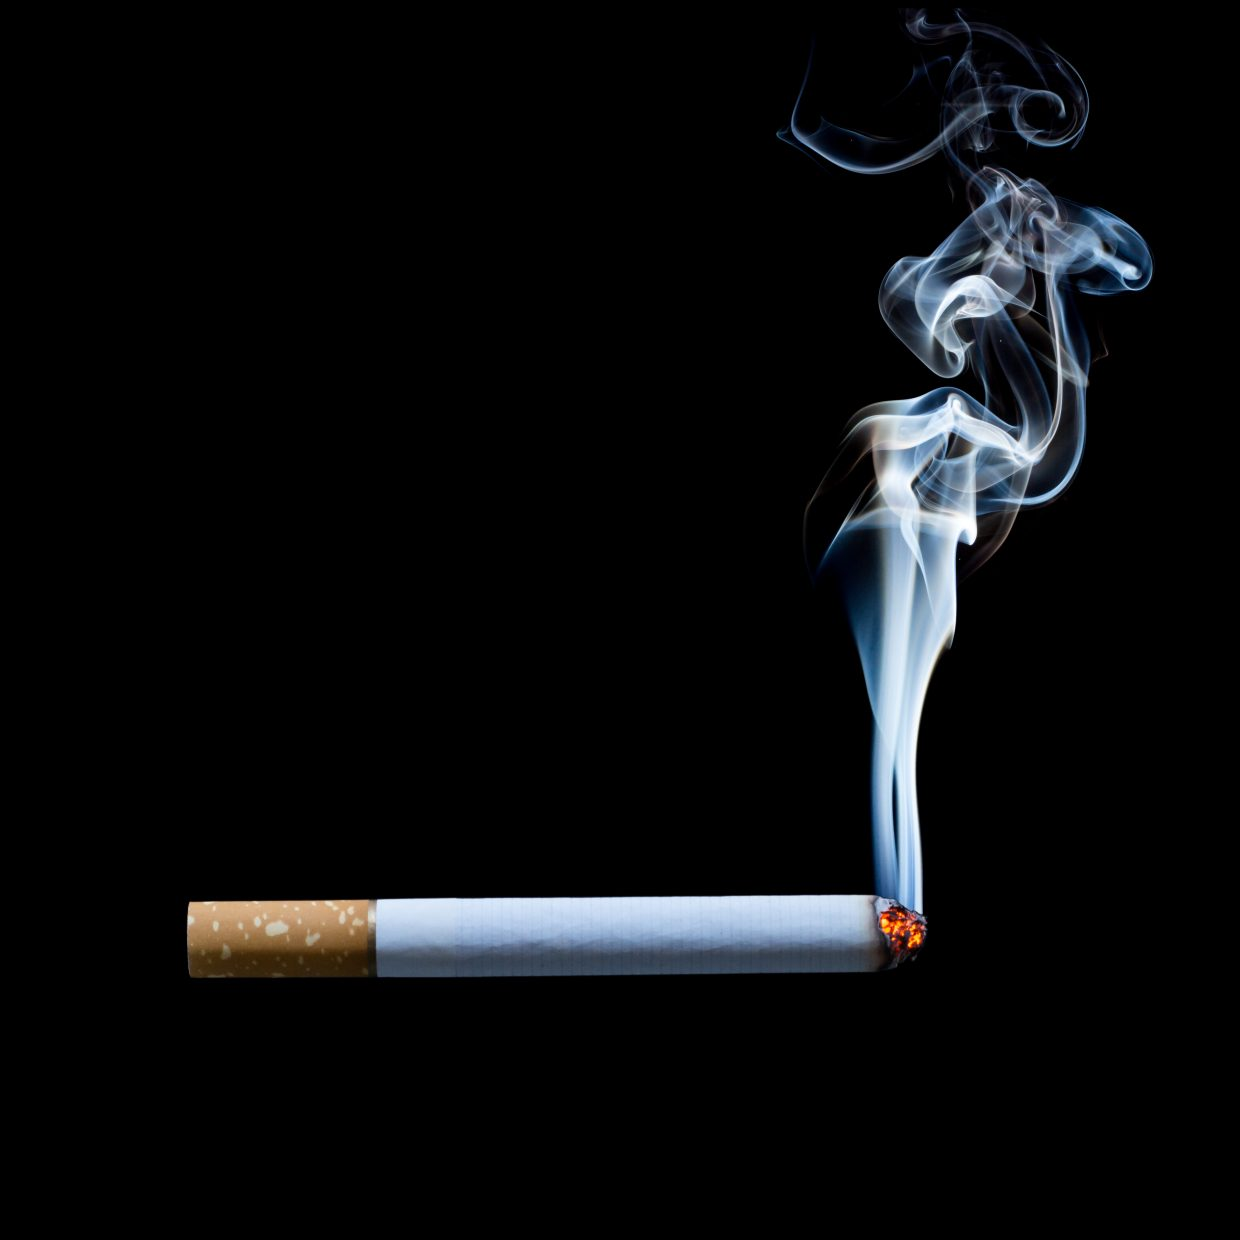 the deadly habit of smoking Anti-smoking group finds streaming giant's shows feature twice as many cigarettes and 'tobacco incidents' as traditional tv channels.